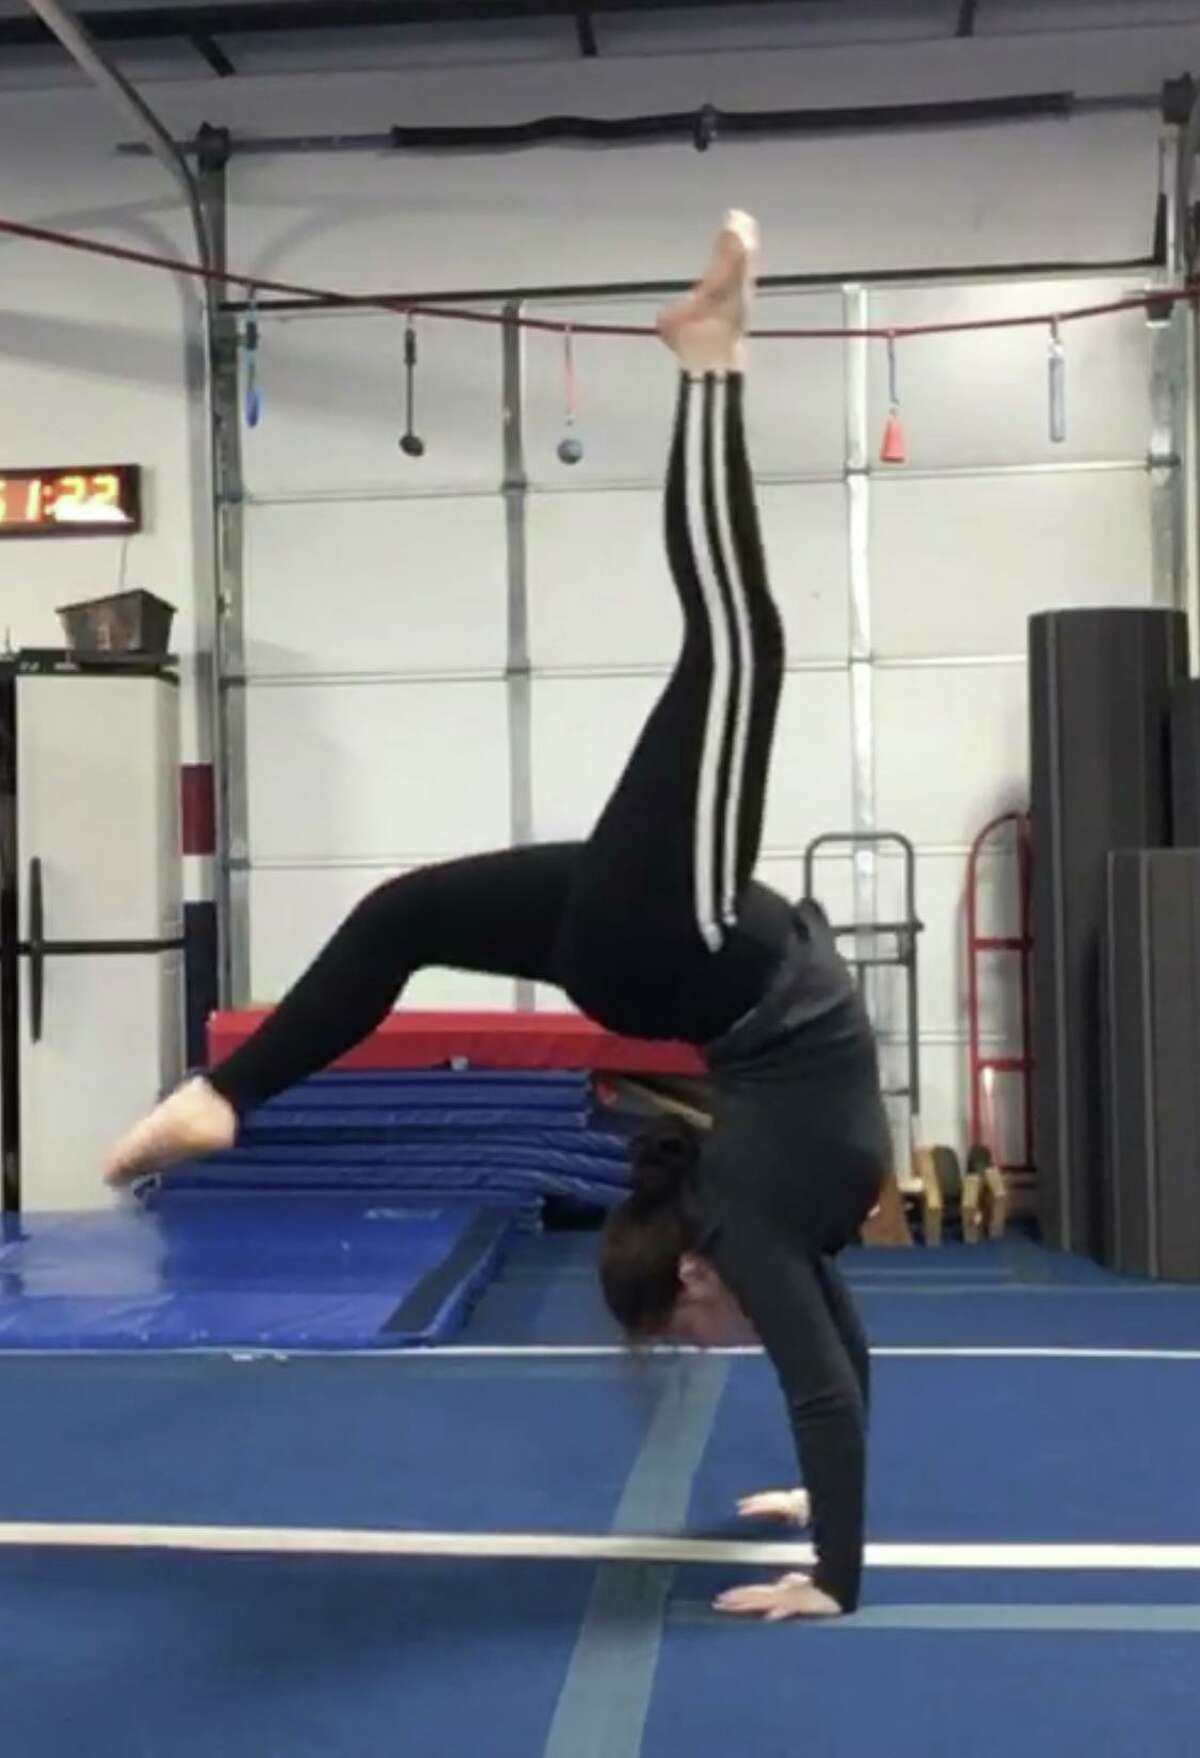 Missouri City resident Cheyenna Becker lost her dad in Iraq in 2007 and has been able to take gymnastics classes with financial support from The Folder Flag Foundation, an organization that helps Gold Star families.